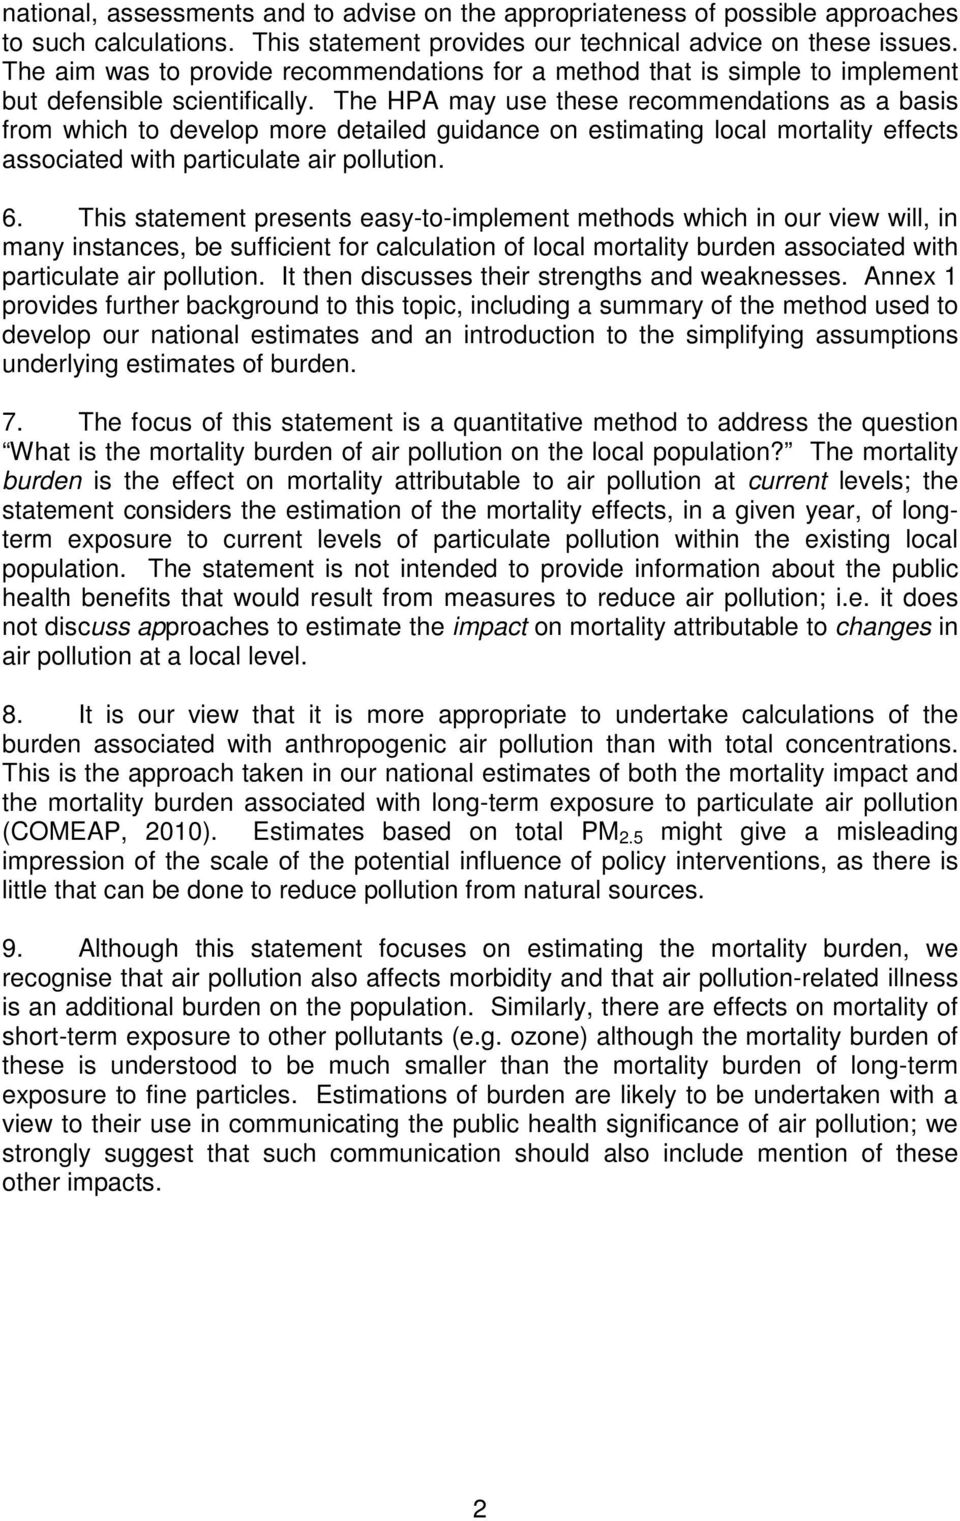 The HPA may use these recommendations as a basis from which to develop more detailed guidance on estimating local mortality effects associated with particulate air pollution. 6.